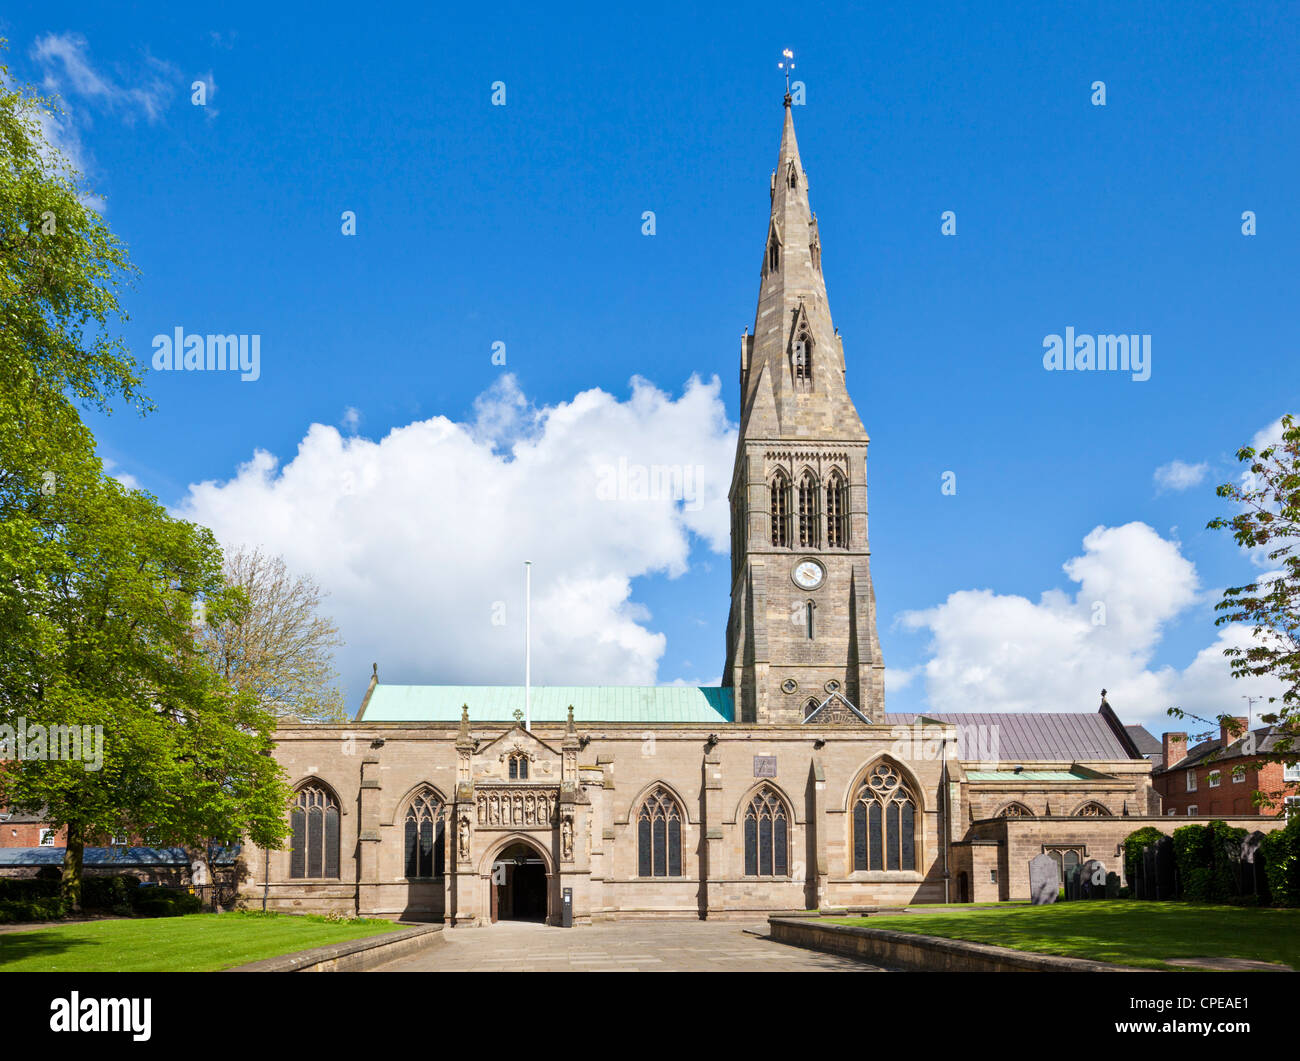 Leicester cathedral Leicestershire England UK GB EU Europe - Stock Image